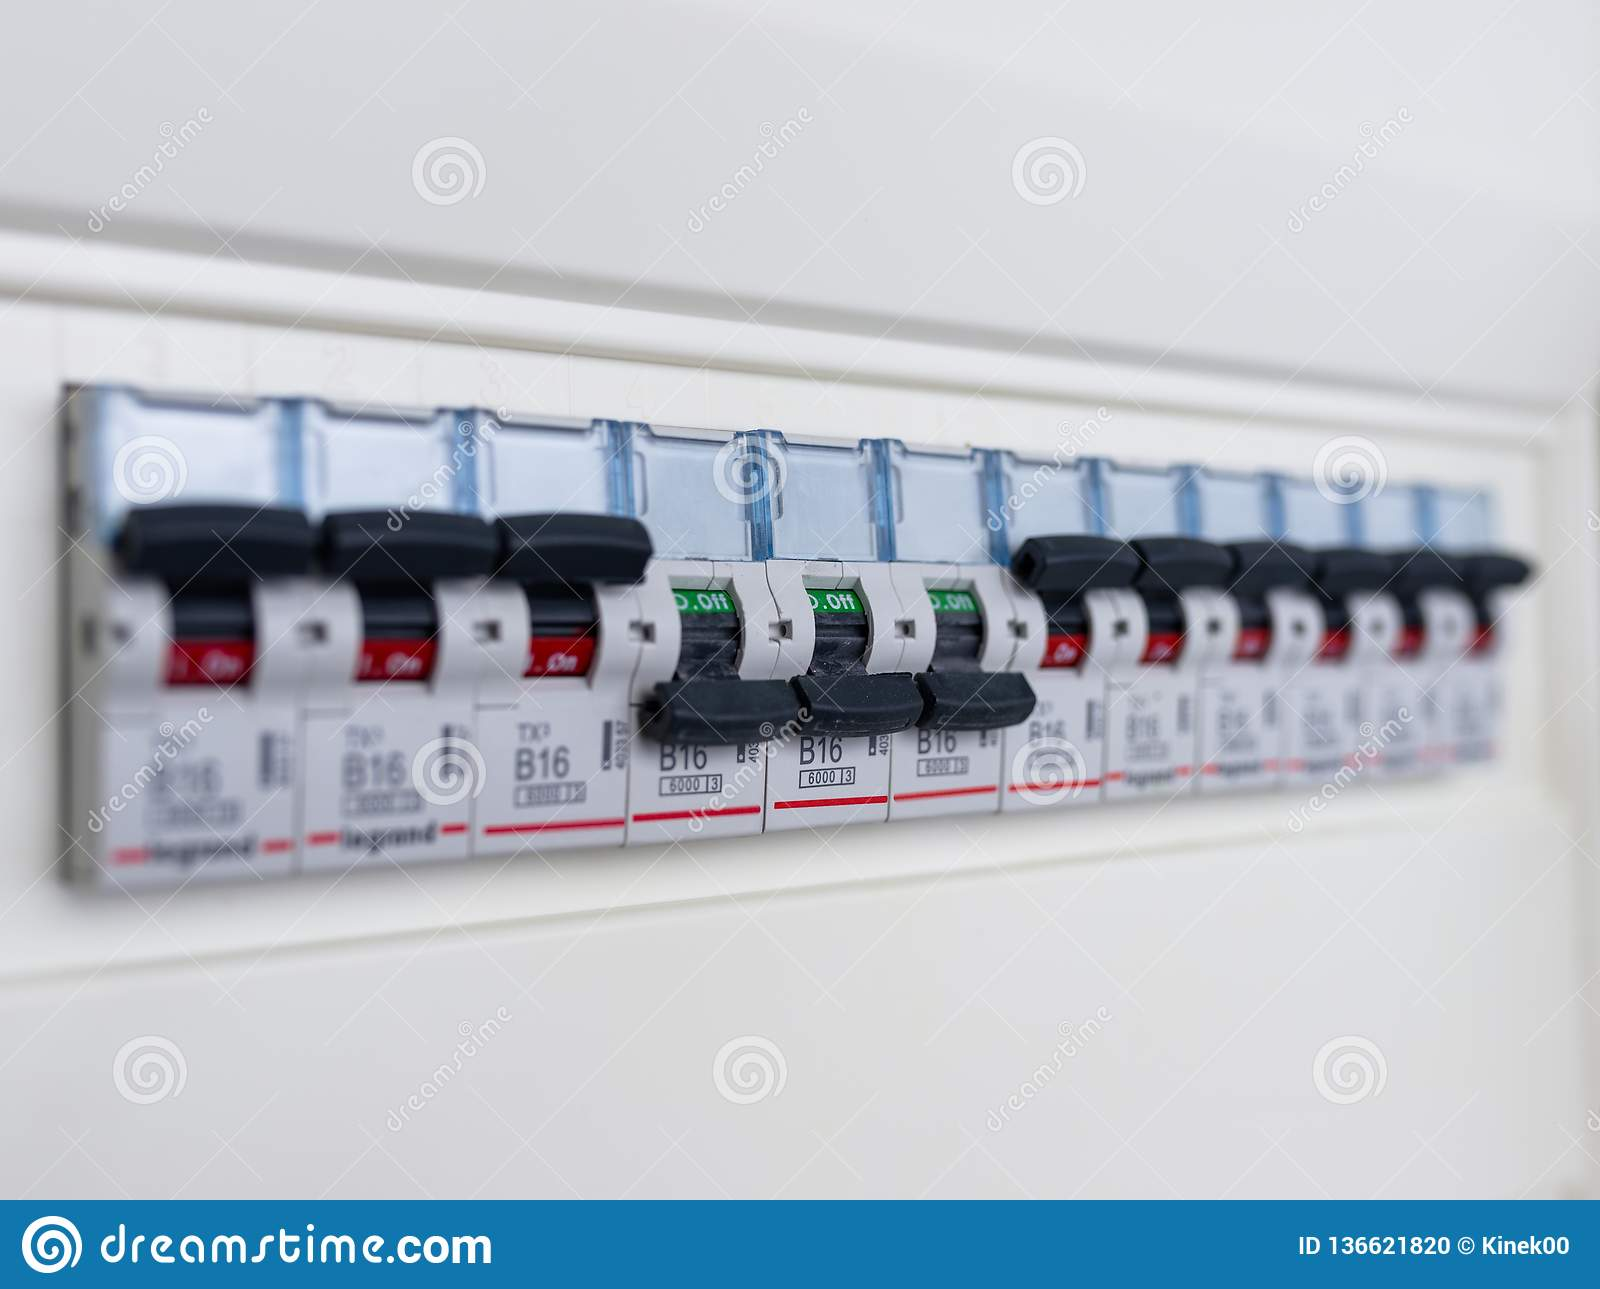 switches in electrical fuse box. many black circuit breakers in a row in  position on and three switch in position off. power contr stock photo -  image of cycle, automatic: 136621820  dreamstime.com